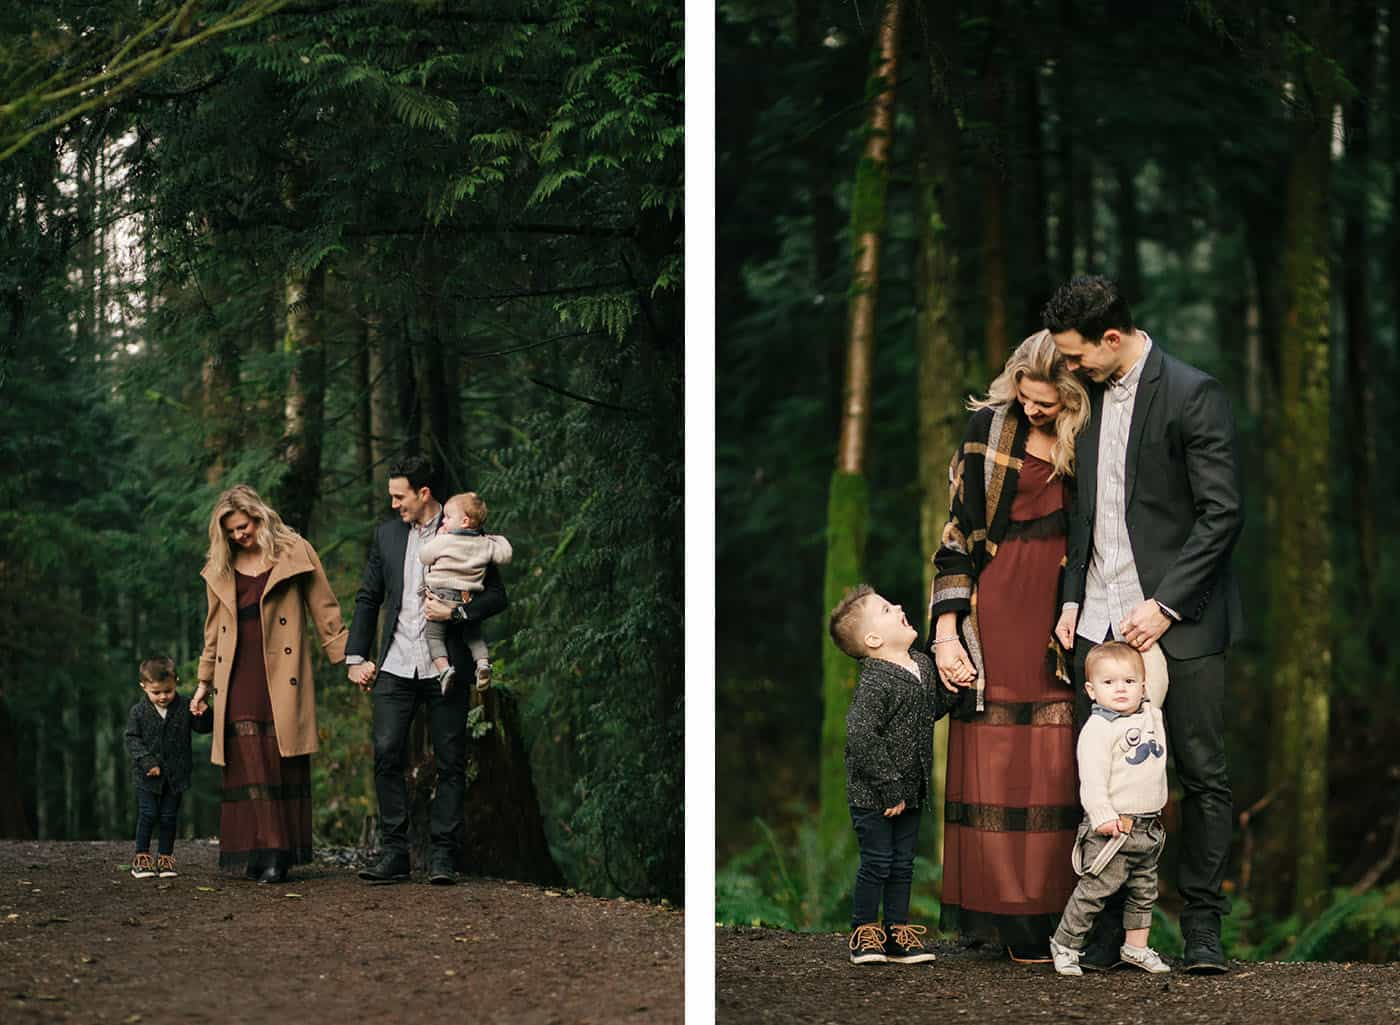 Family portrait poses: a sweet family of four poses in the woods for beautiful portraits.